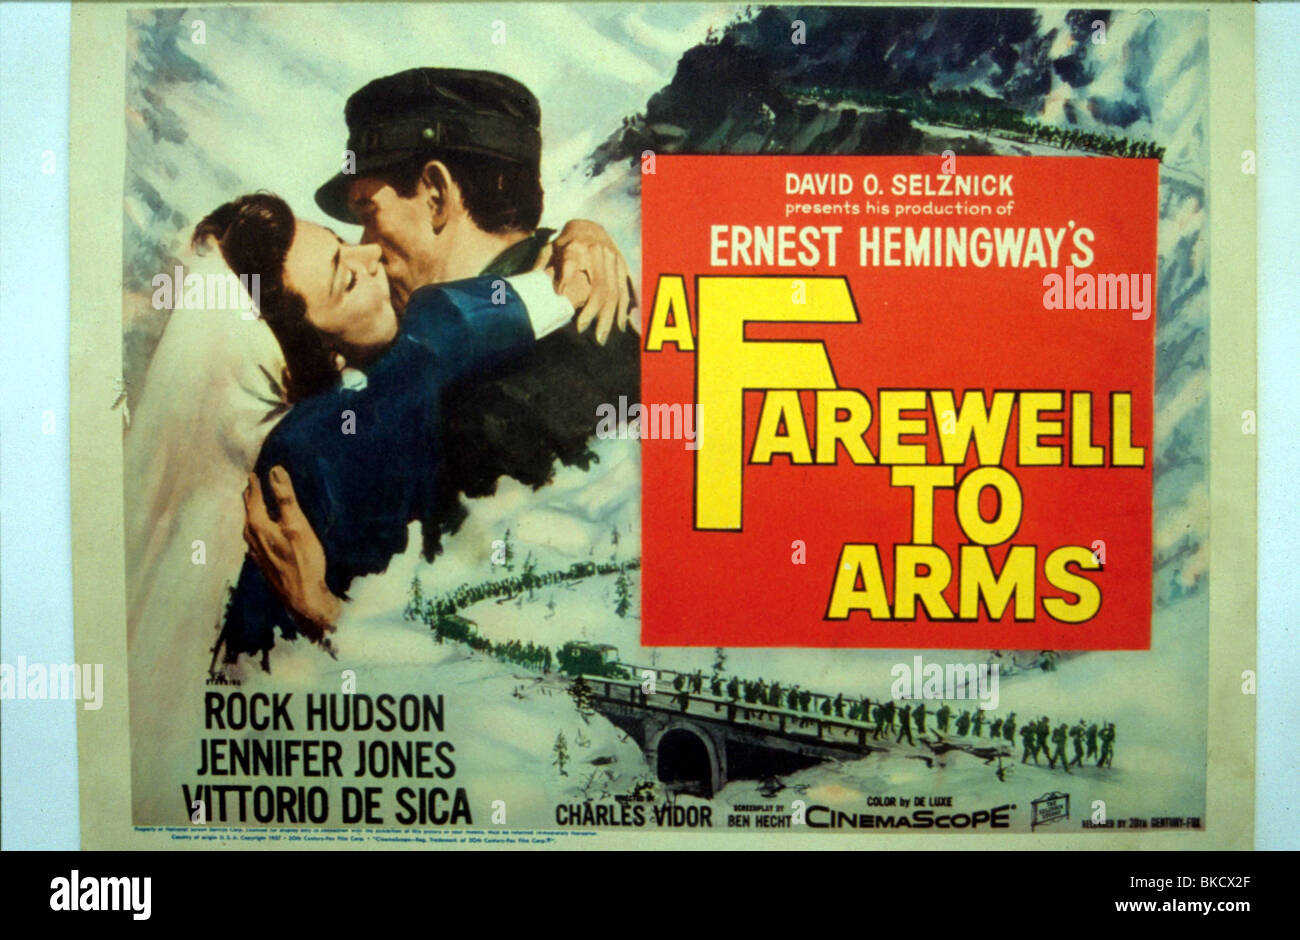 A FAREWELL TO ARMS -1957 POSTER Stock Photo, Royalty Free ... A Farewell To Arms Movie Poster